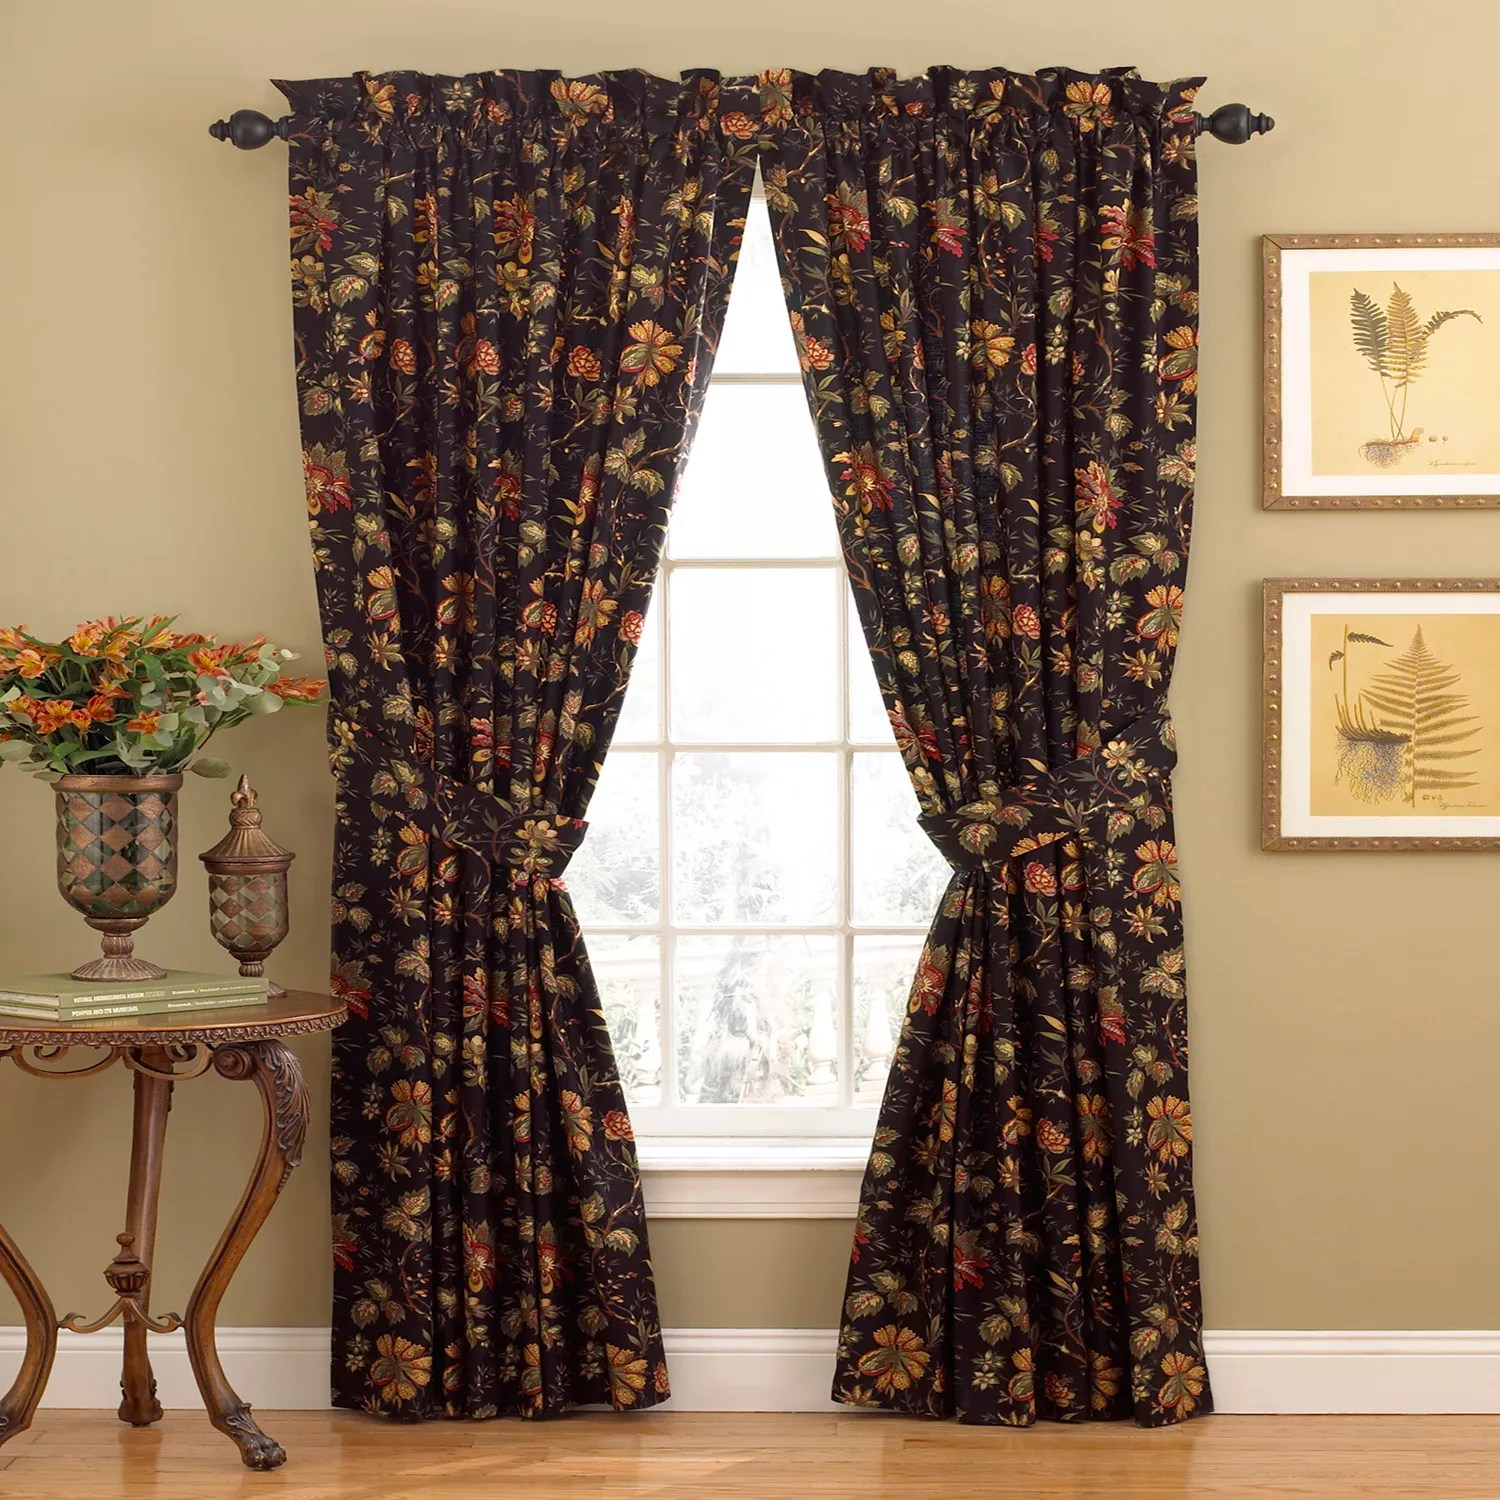 kitchen curtains kohls trash bin red drapes window treatments home decor kohl s waverly 1 panel felicite curtain 50 x 84